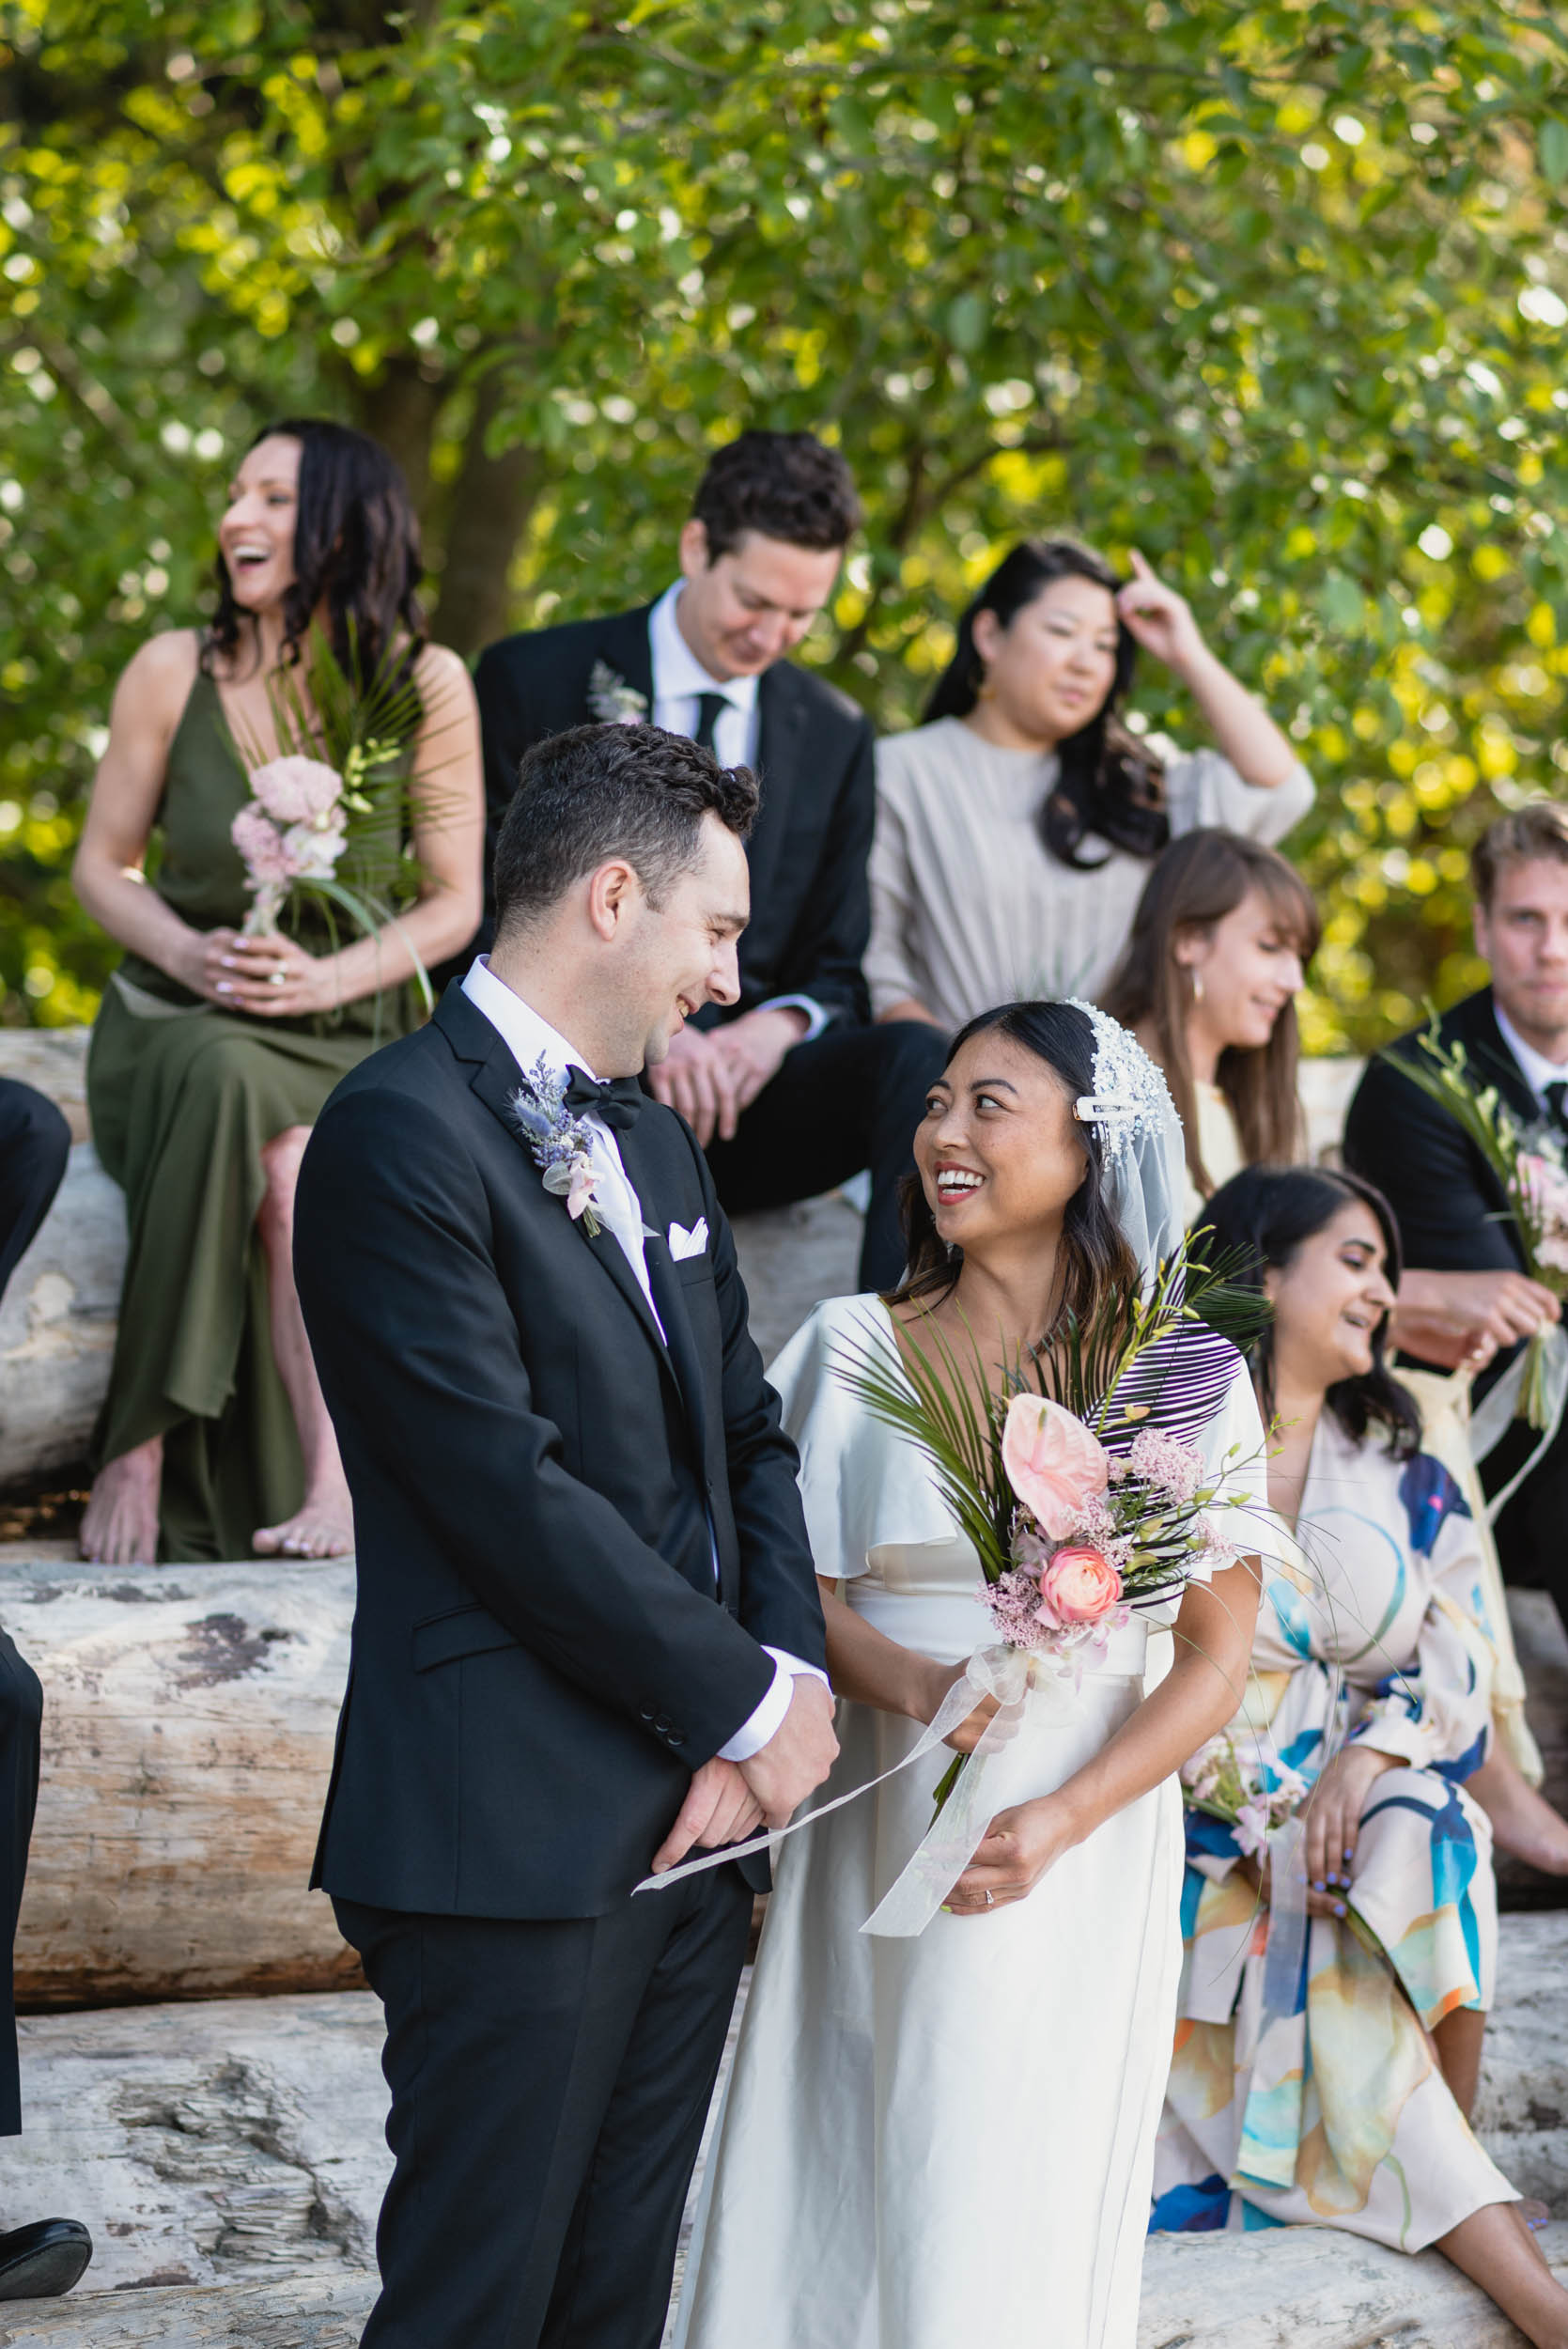 Bridal party at beach with logs